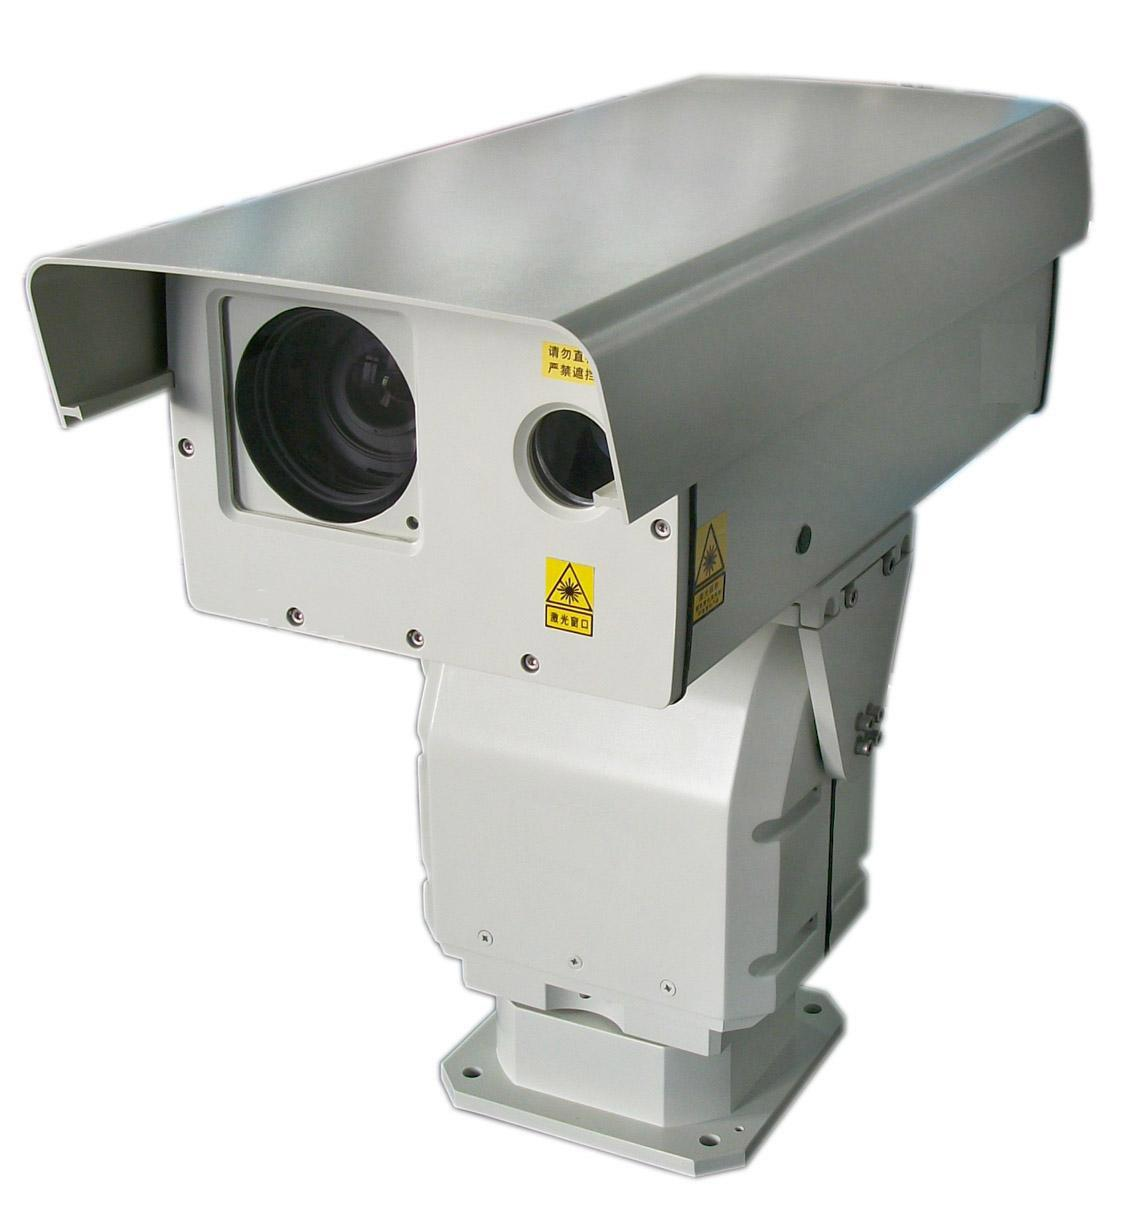 FS-UL3120-HD Night Vision Infrared Laser PTZ Camera